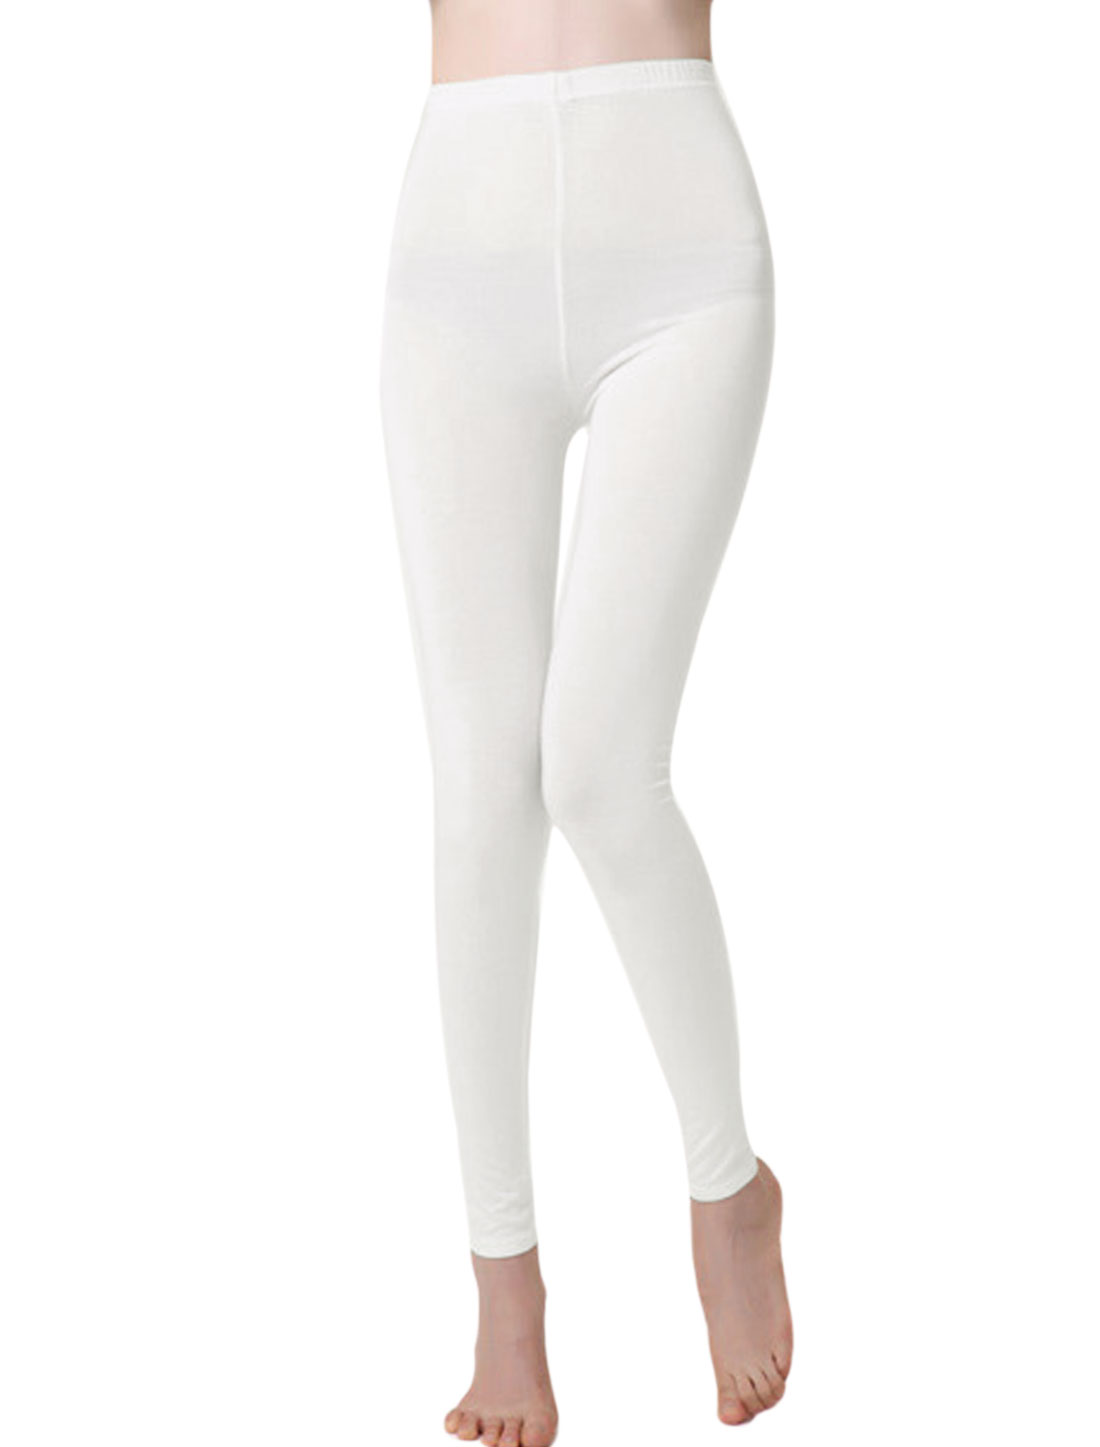 Autumn Soft Elastic Waist Full Length Leggings for Lay White XS